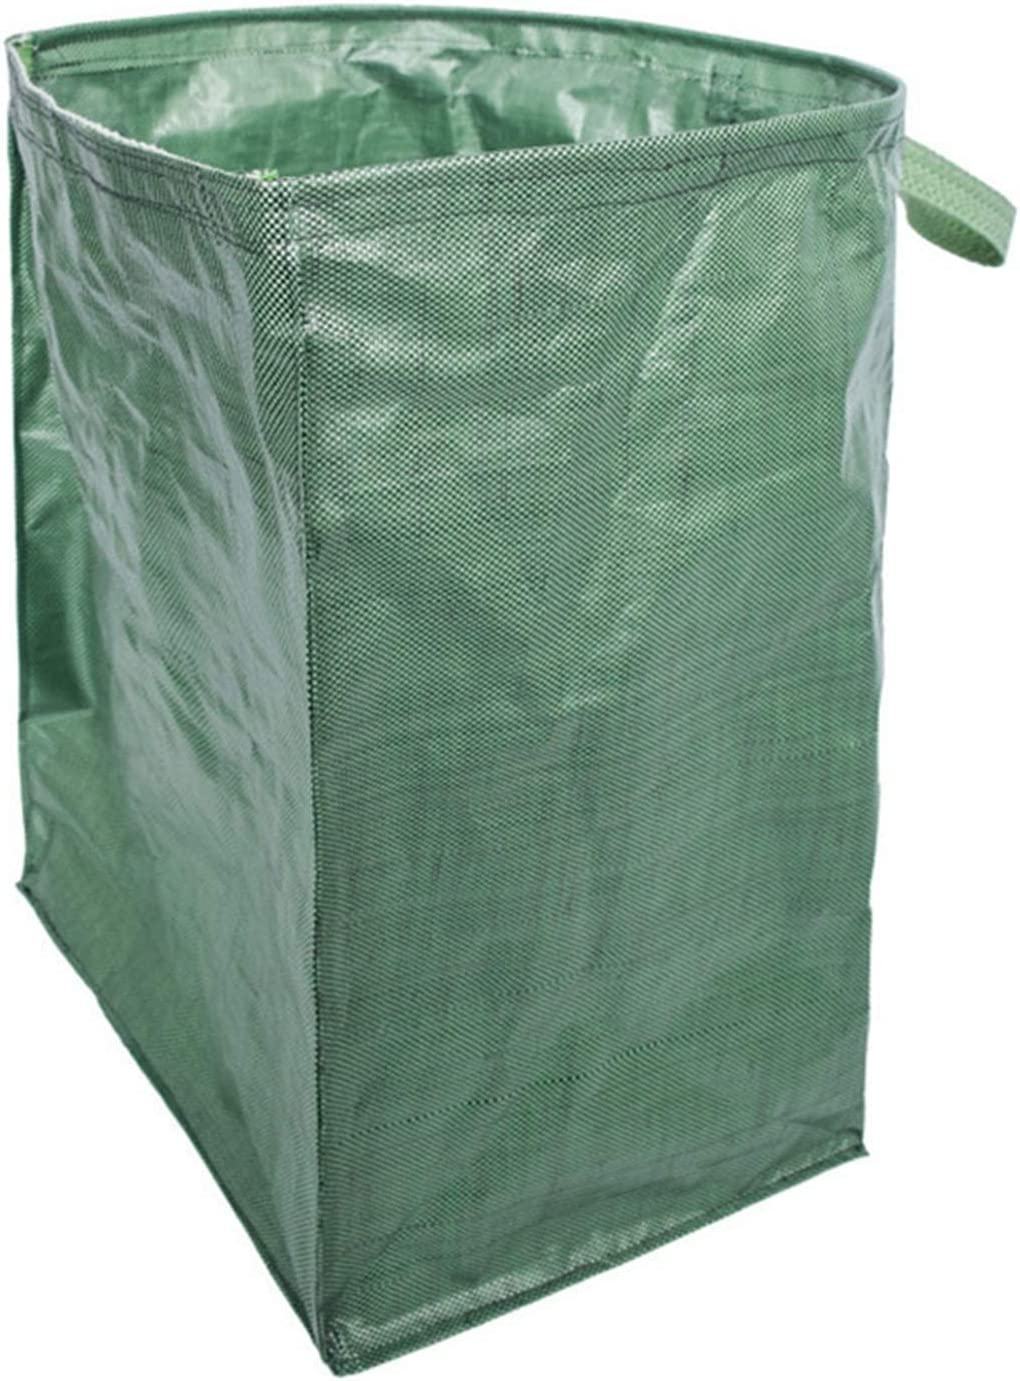 Time sale kengbi That Has Good Wear Max 44% OFF Reusable Waste Resistance Bags Garden